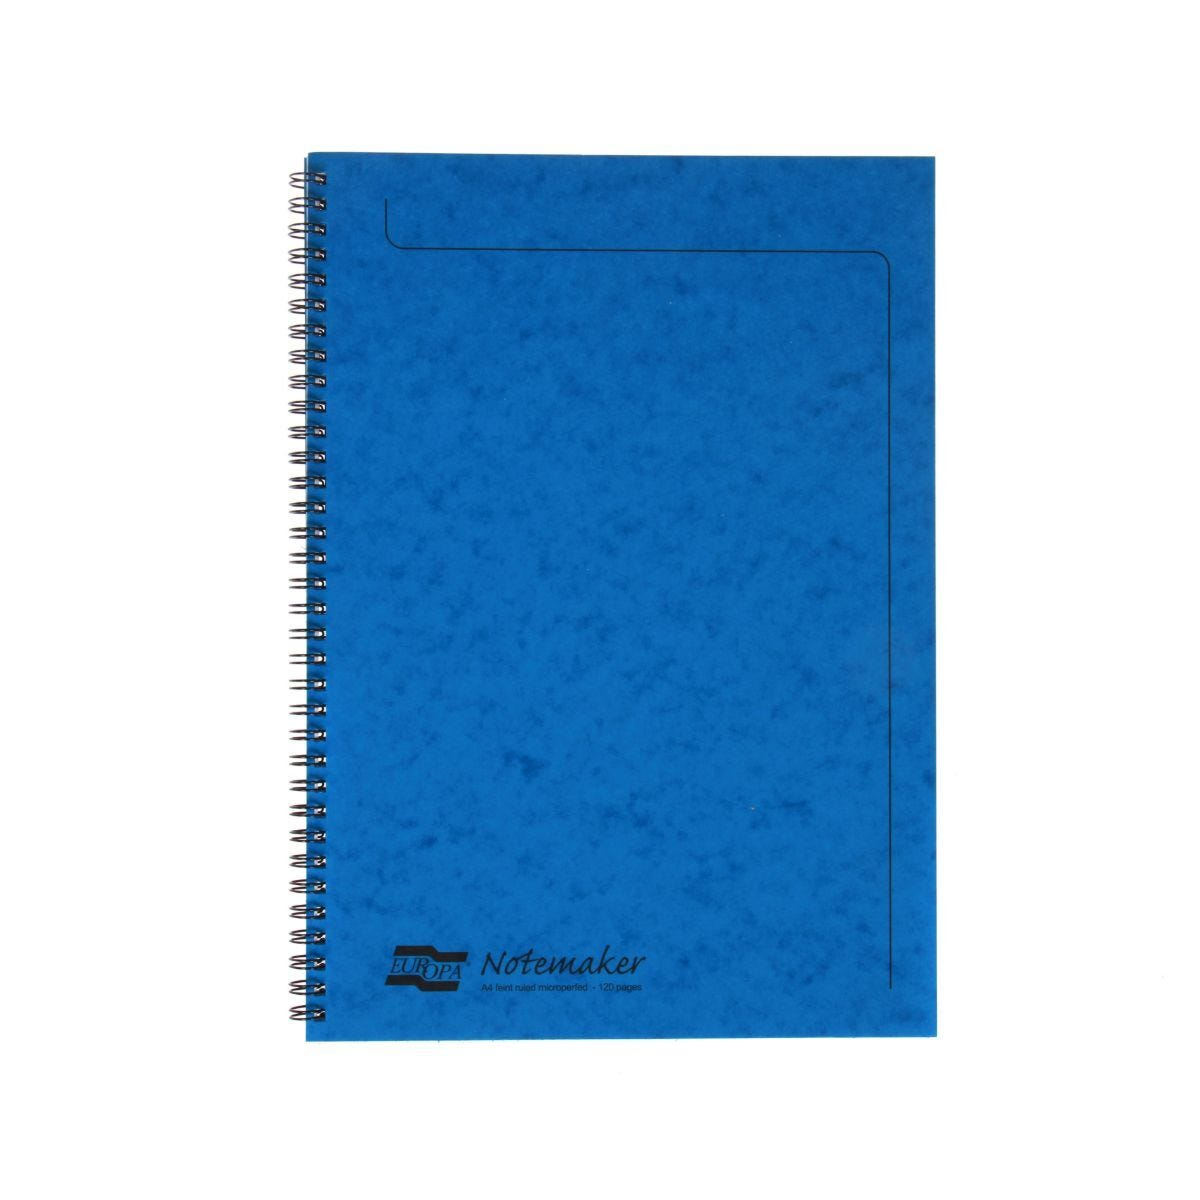 Europa A4 Notemaker 120 Pages 60 Sheets 90gsm Blue